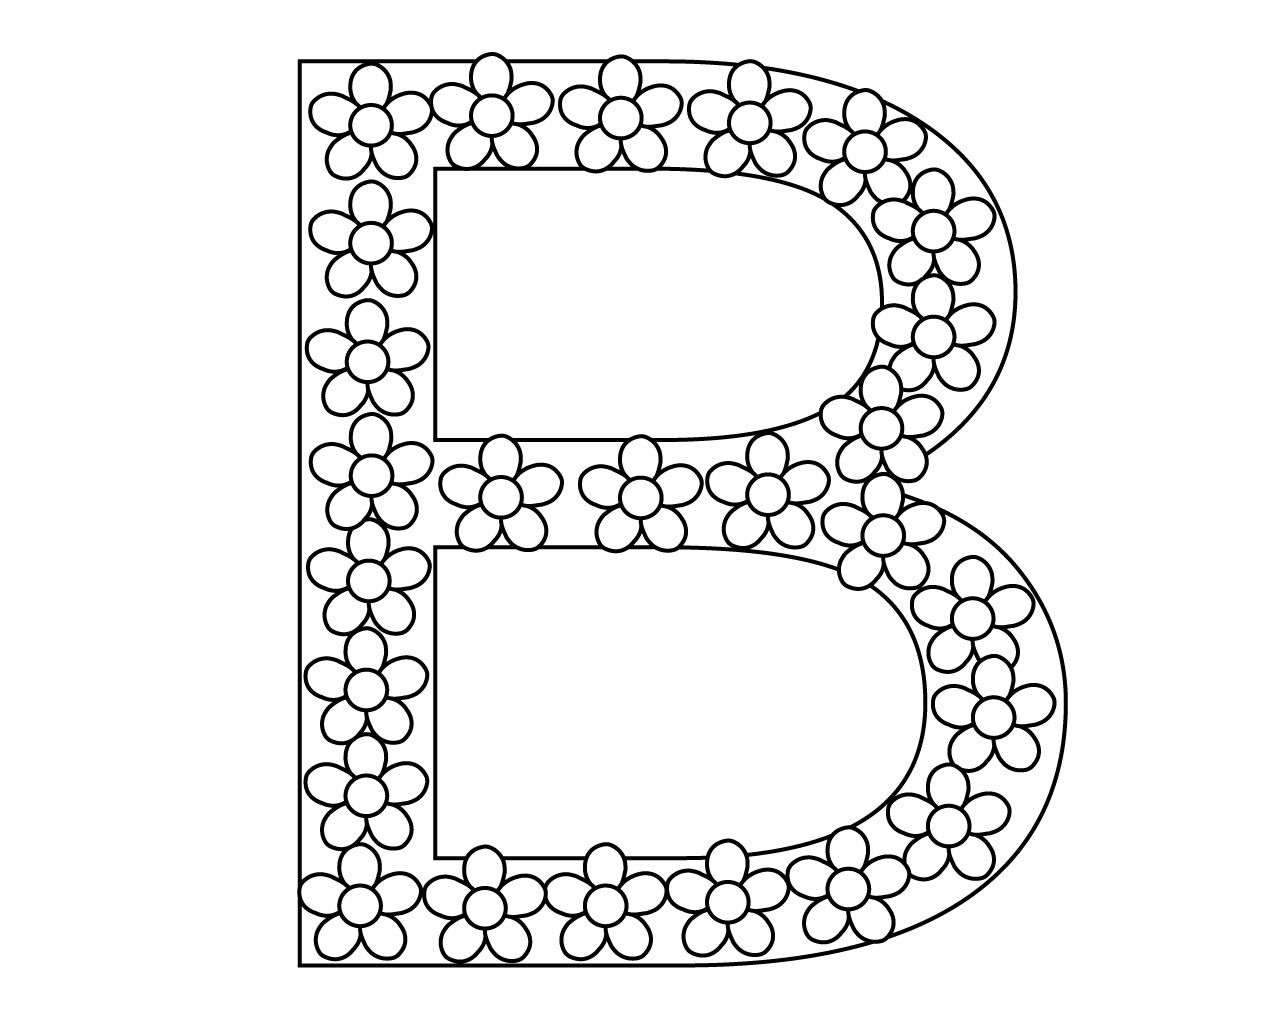 Letter B Alphabet Coloring Pages 3 Printable Versions Letter B